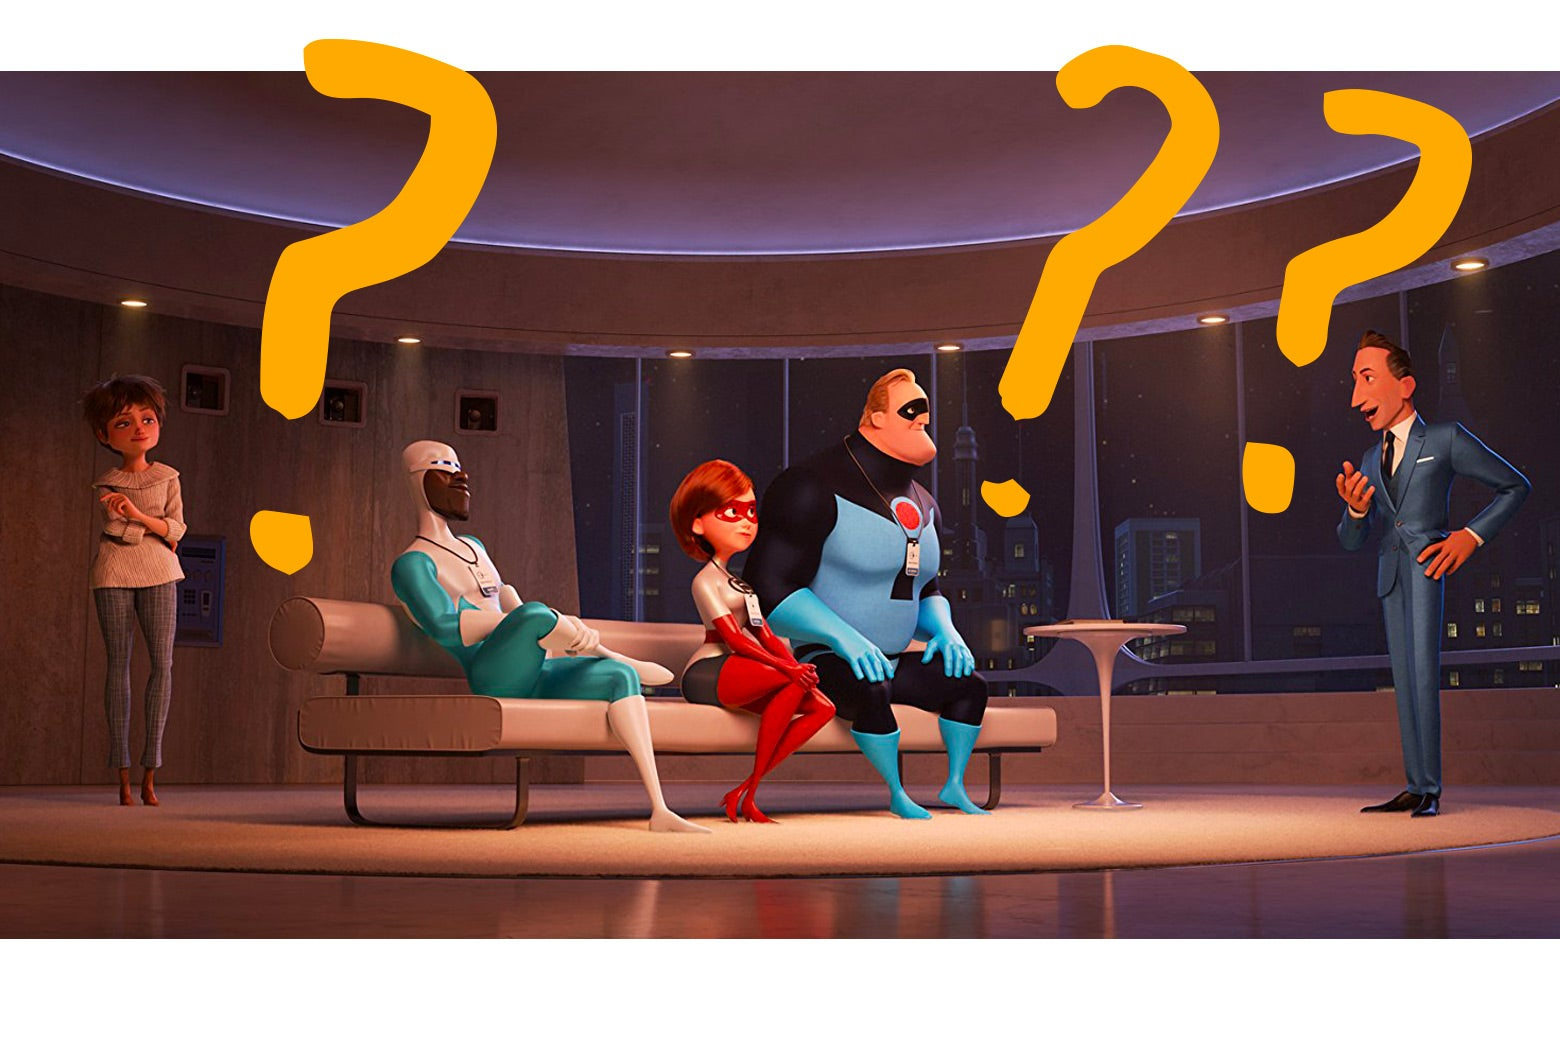 Photo illustration: A still from Incredibles 2 with MS Paint–style question marks overlaid.